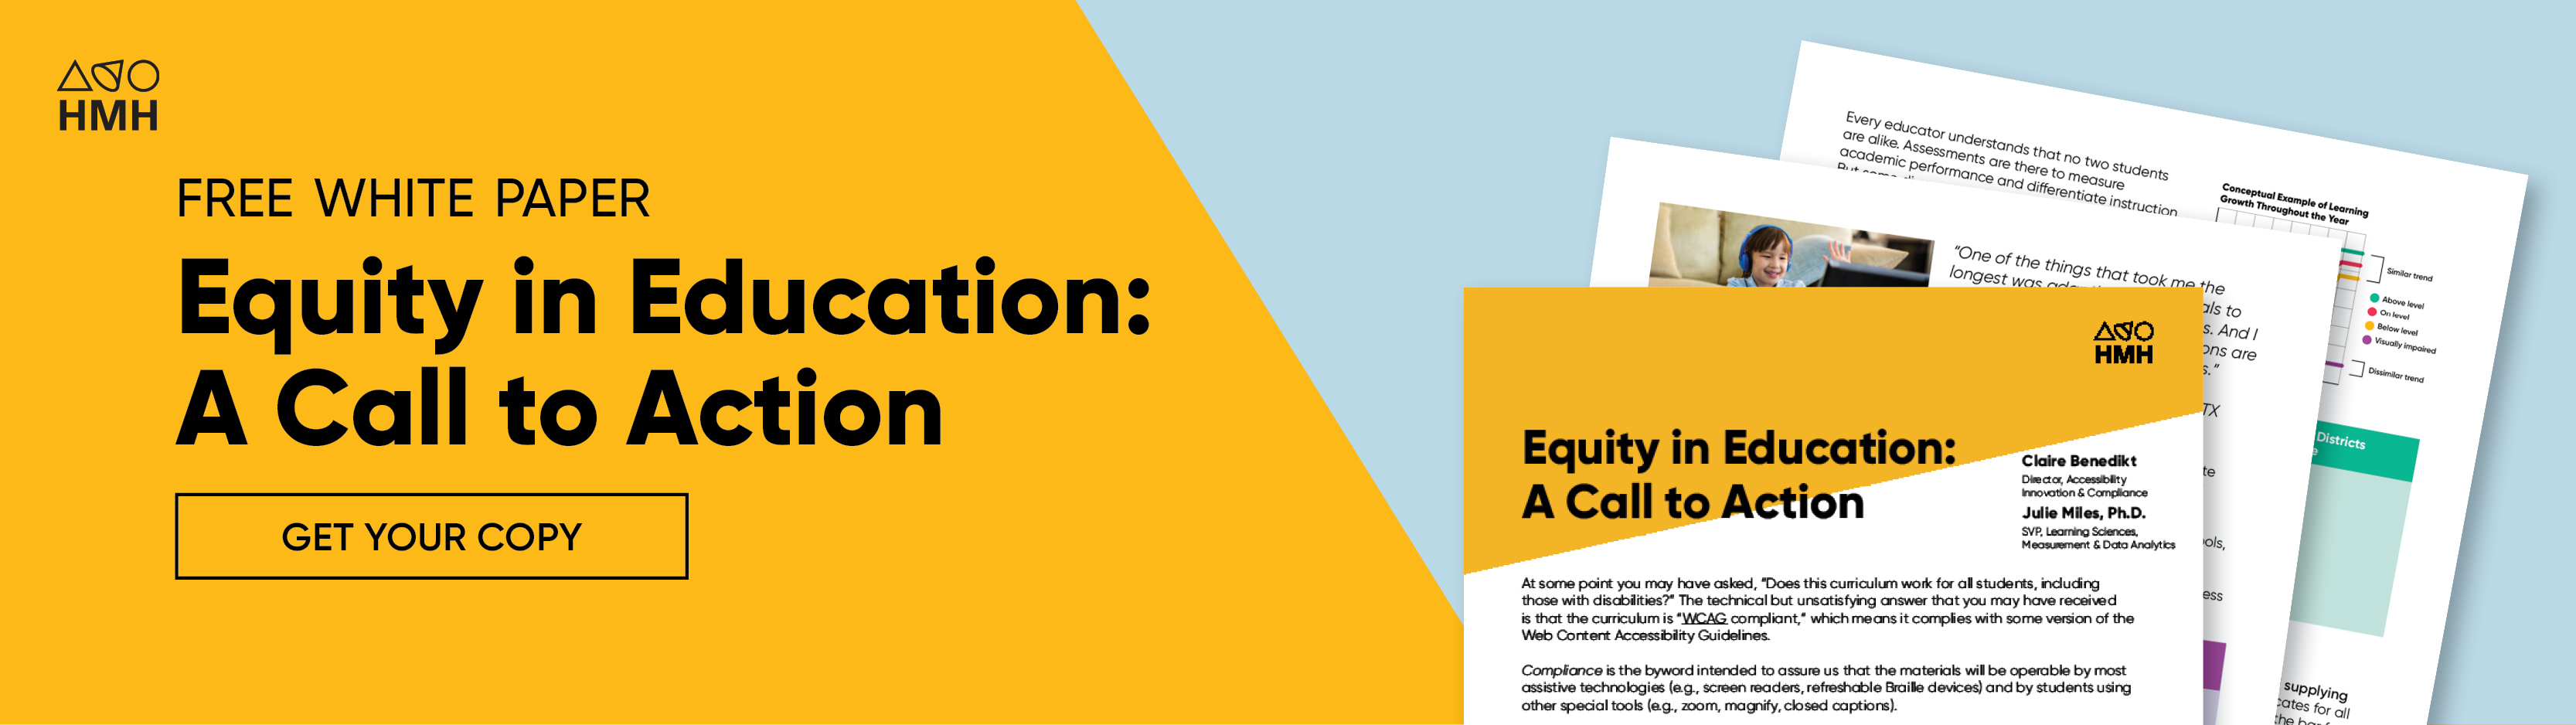 Equity in Education: A Call to Action